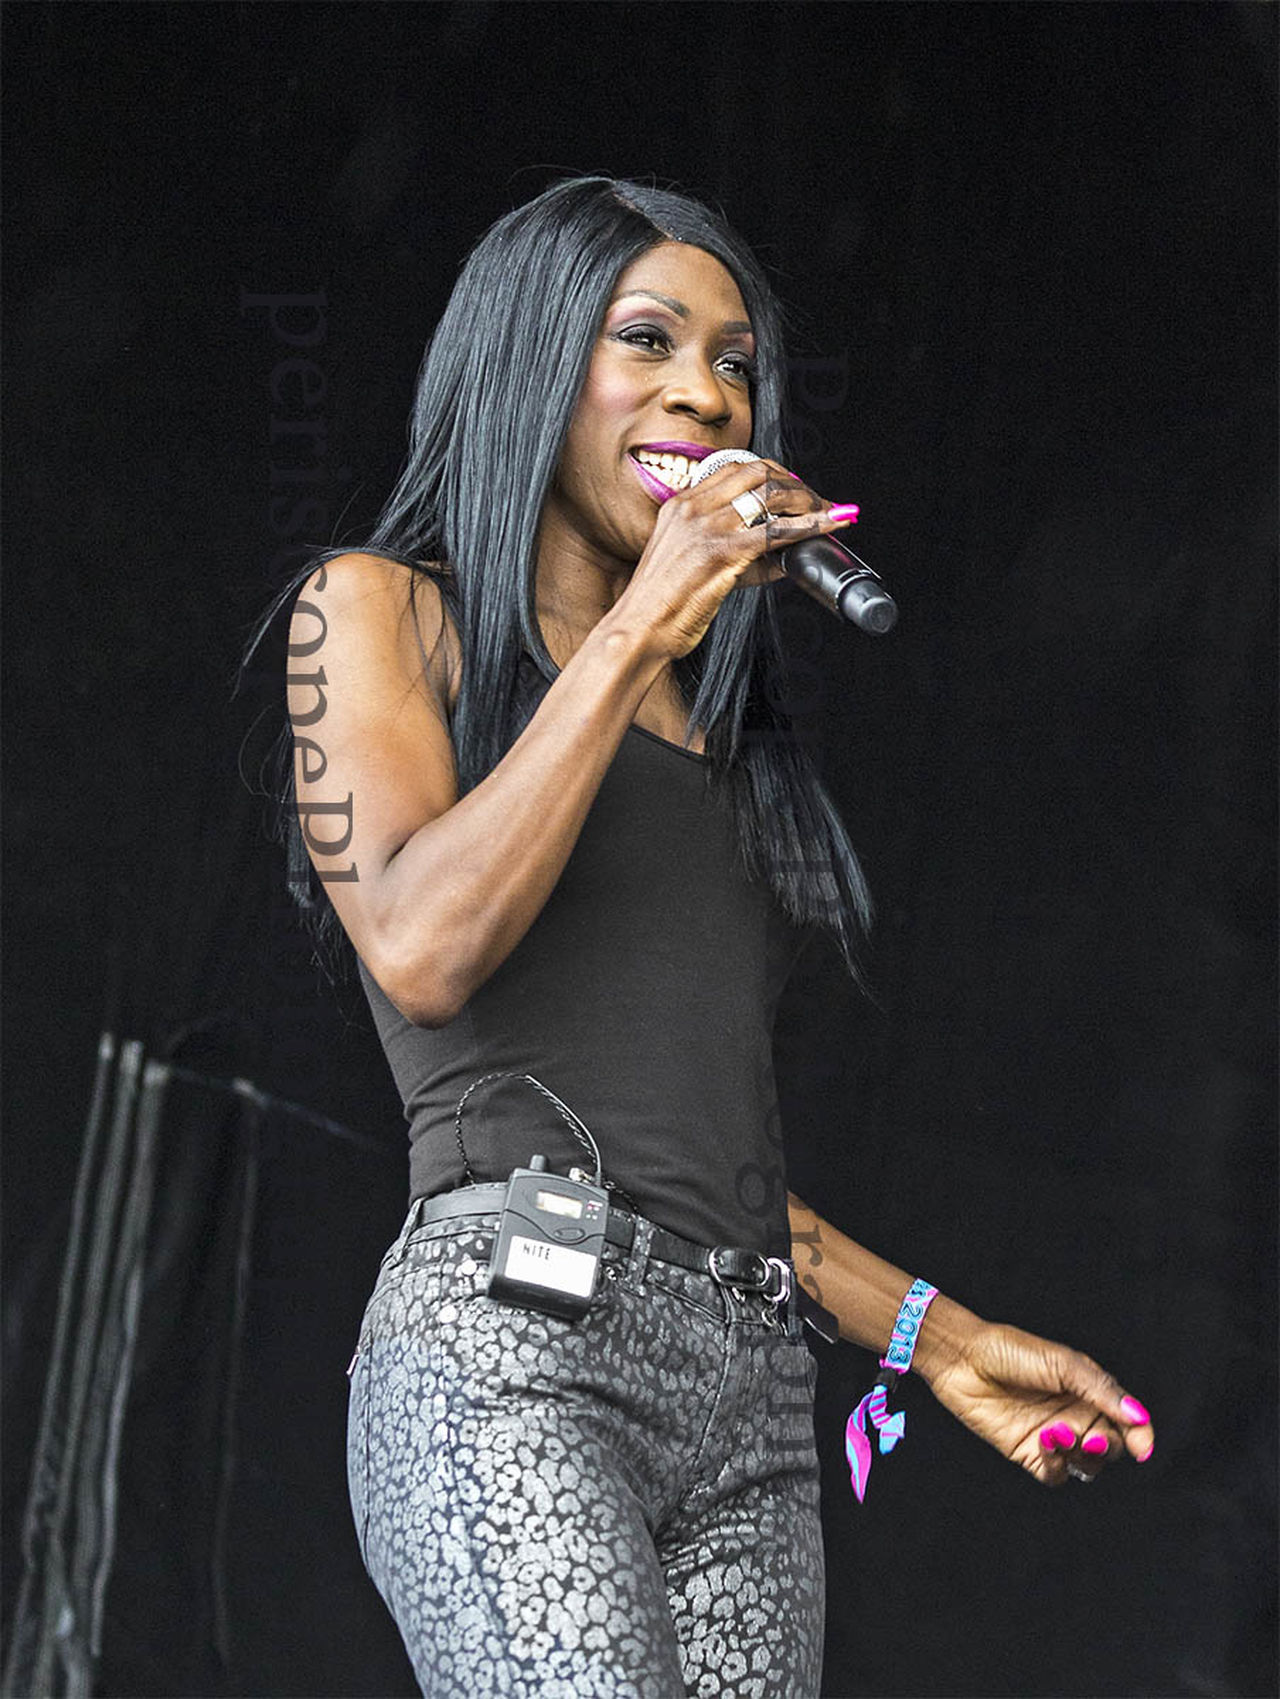 Heathe Small of M People fame performs at a free concert in south Shields, UK. Artist Blackandwhite Concert Female Gig Heather Small M People Performance Performer  Singer  Three Quarter Length